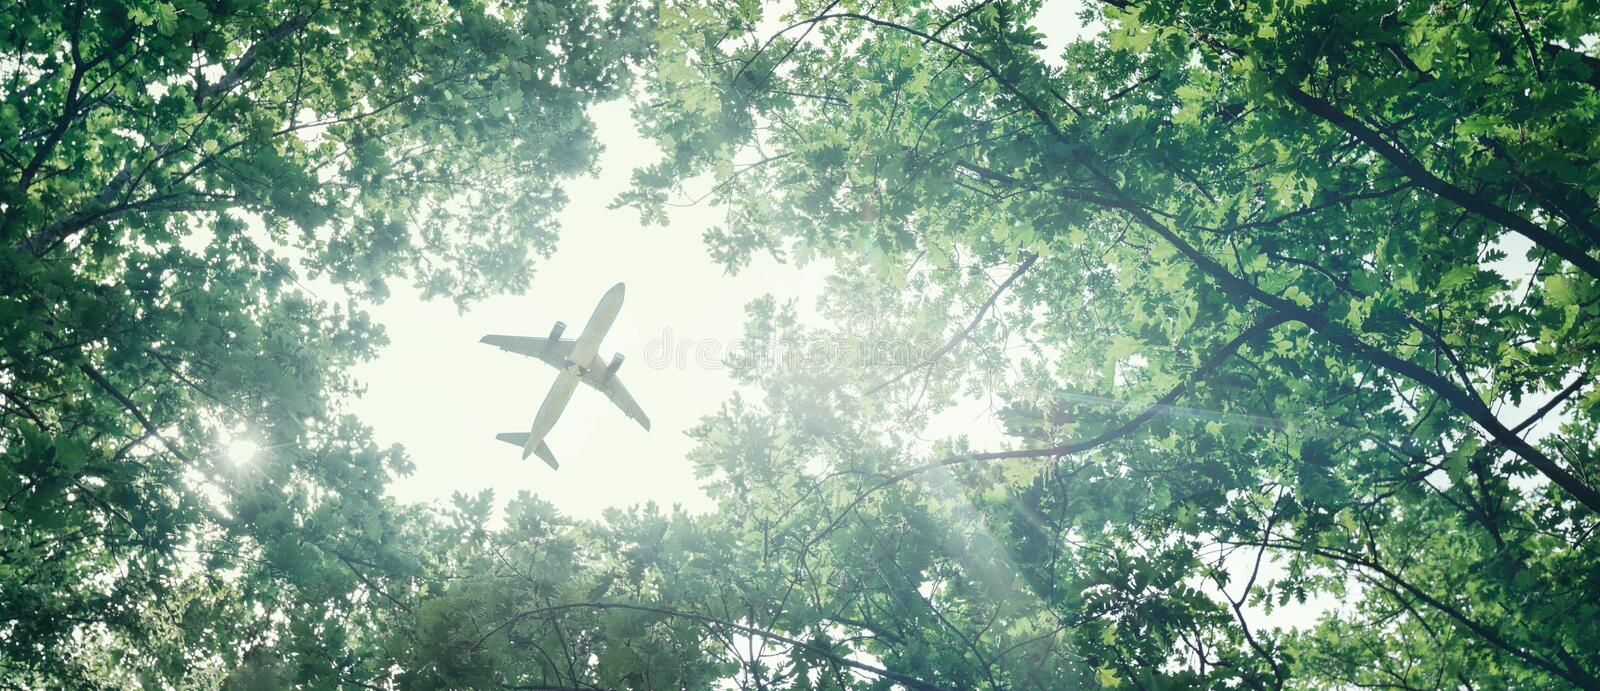 Eco-friendly air transport concept. The plane flies in the sky against the background of green trees. Environmental pollution. Harmful emissions stock photography